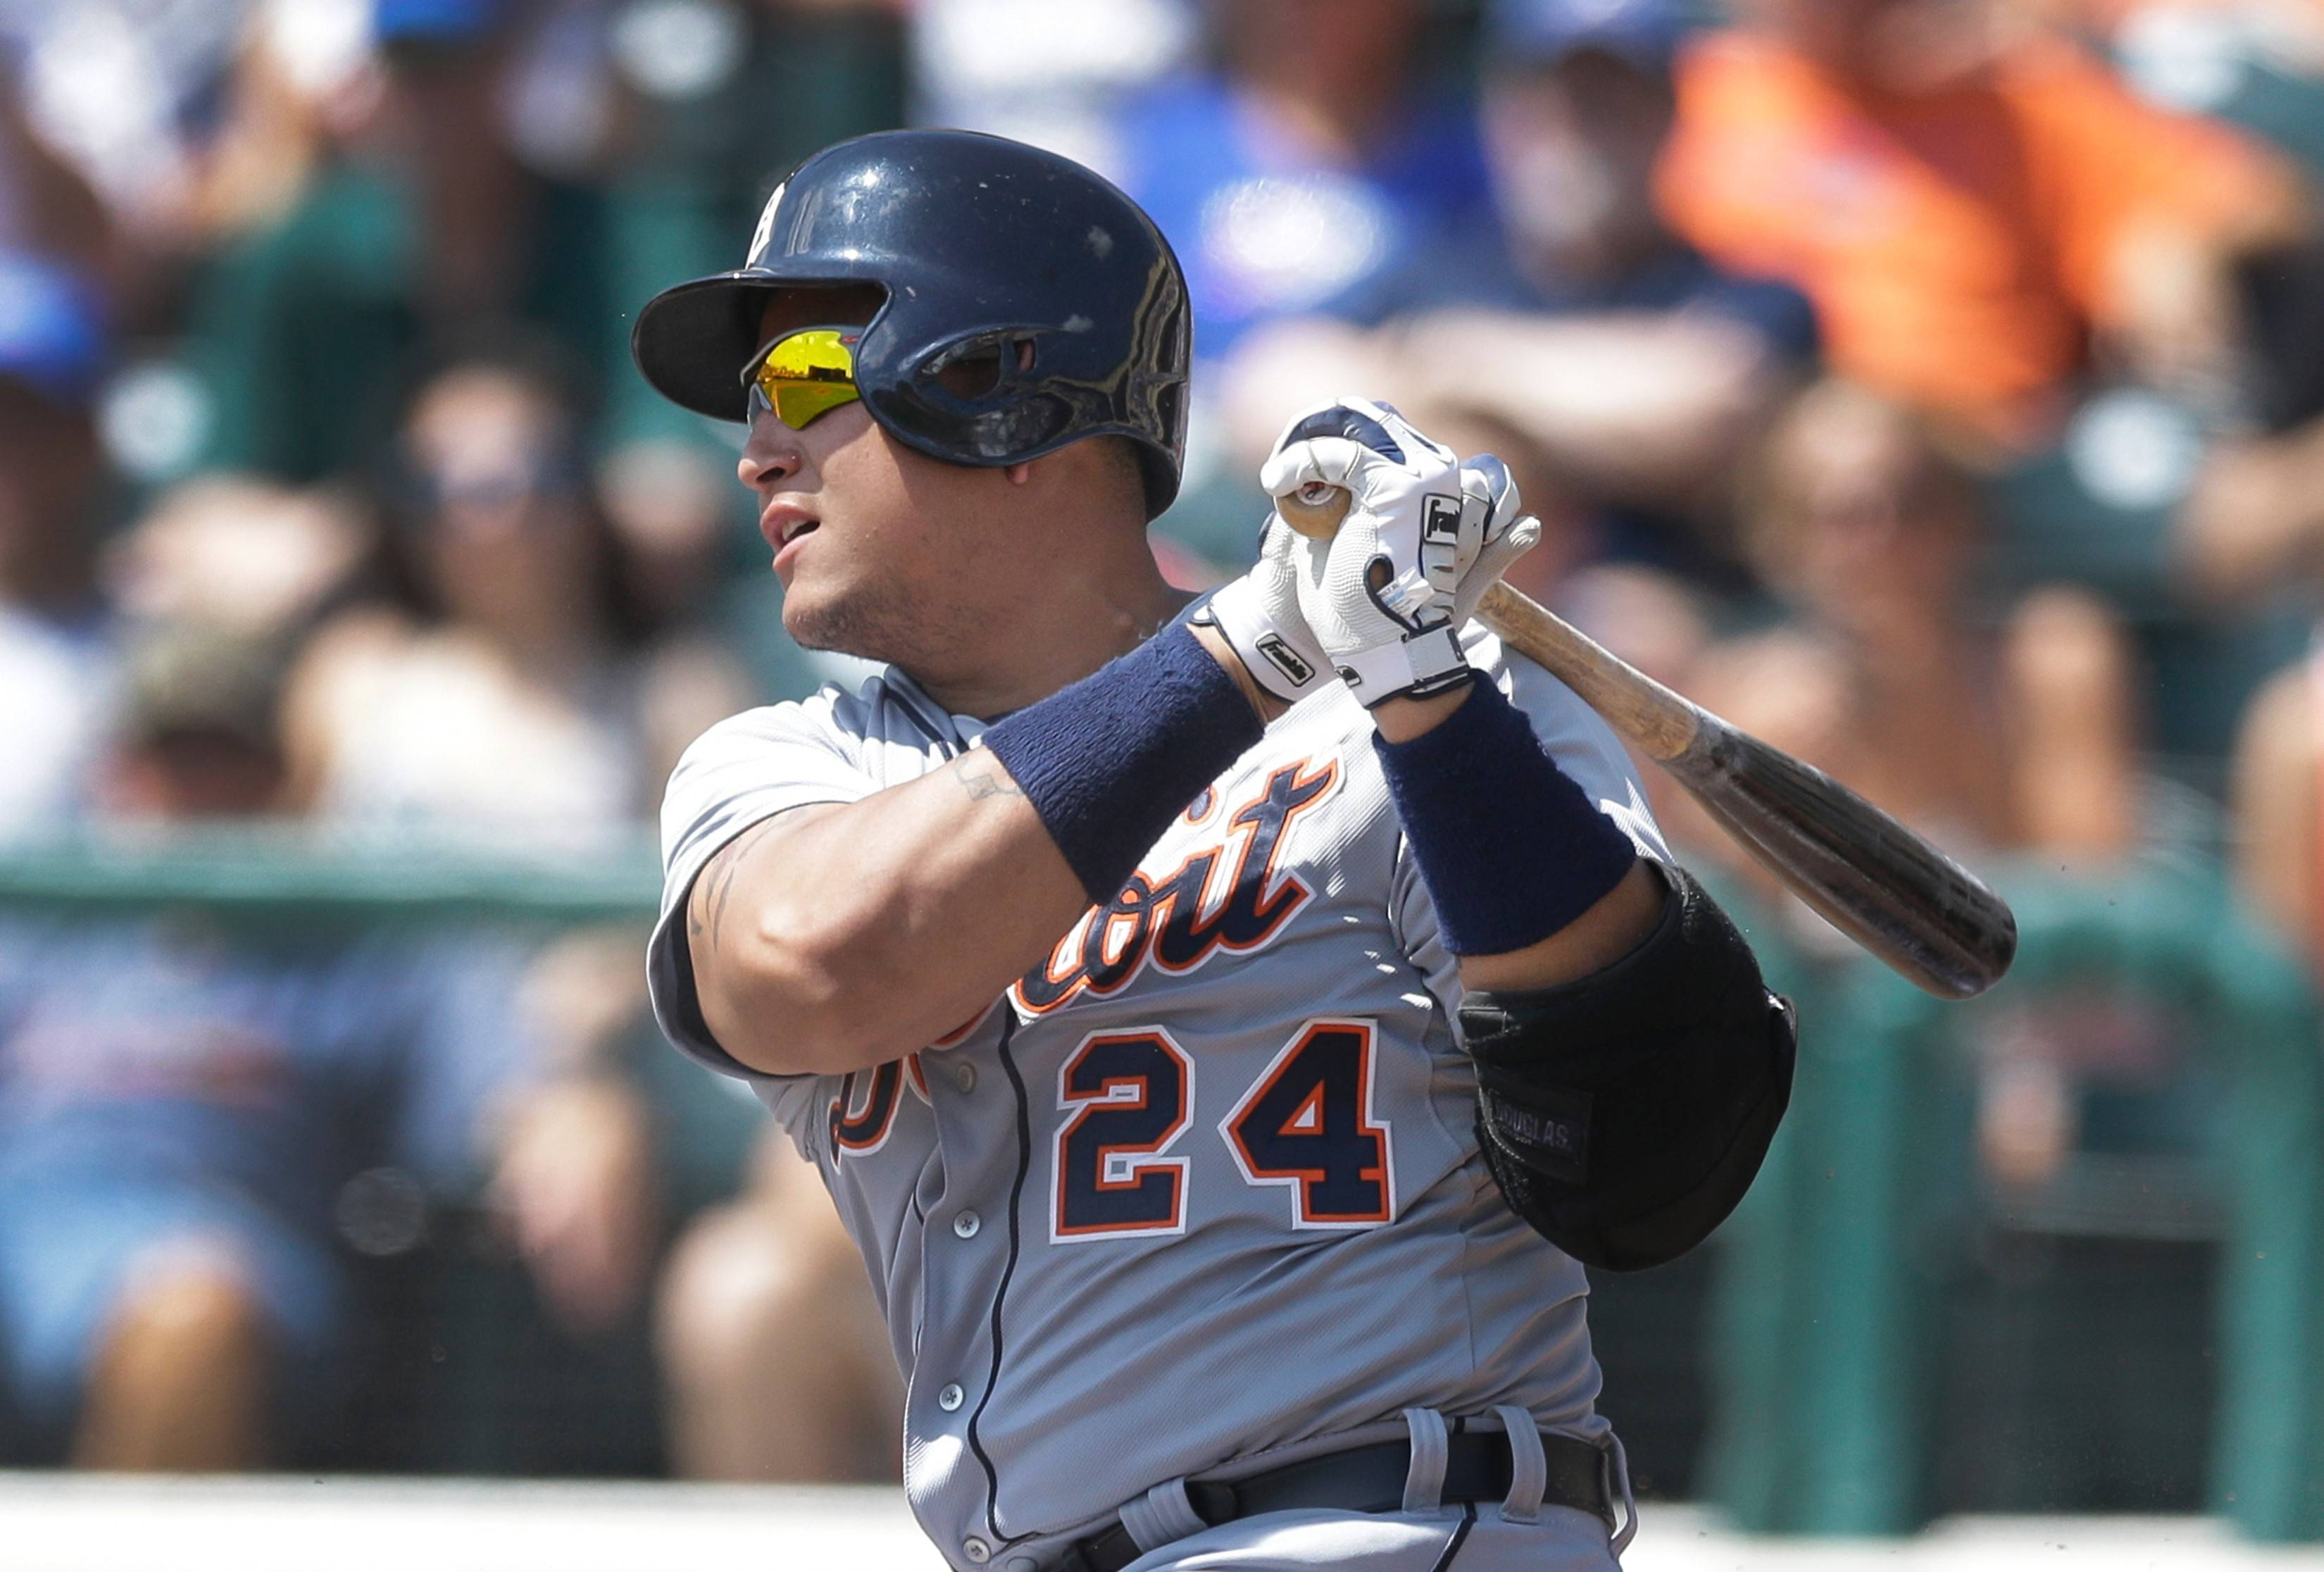 Tigers slugger Miguel Cabrera proved that old-time stats still draw big-time attention ... when you win a Triple Crown, as AL MVP Cabrera did in 2012.